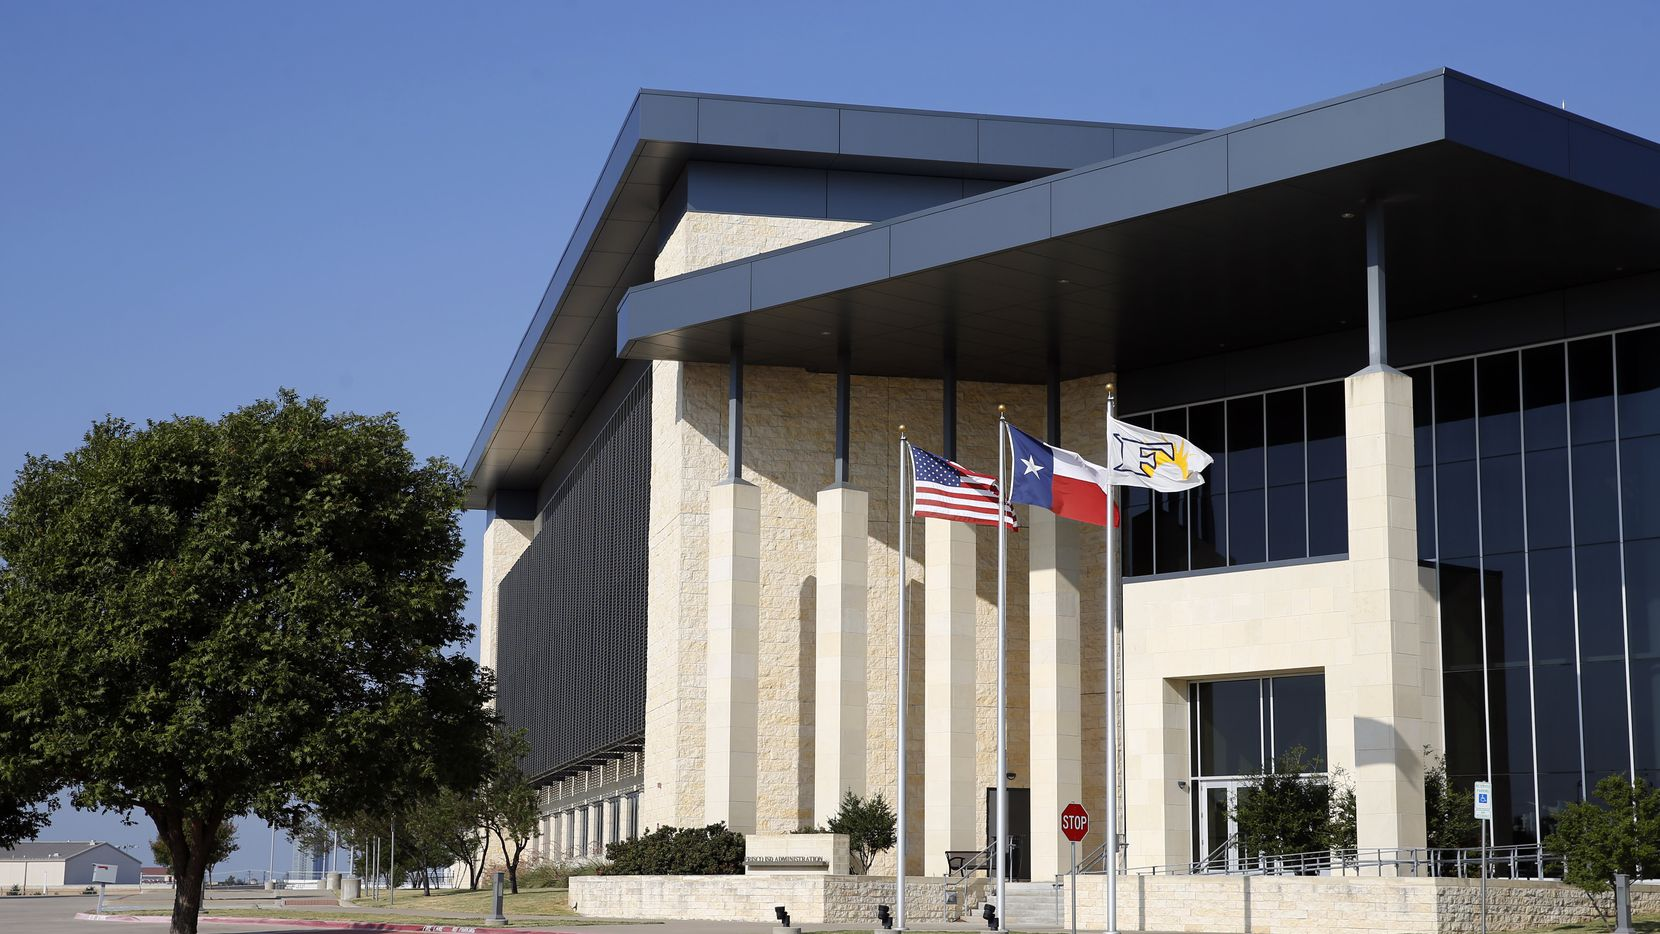 Frisco ISD Administration building in Frisco, Texas on Saturday, October 5, 2019. (Vernon Bryant/The Dallas Morning News)